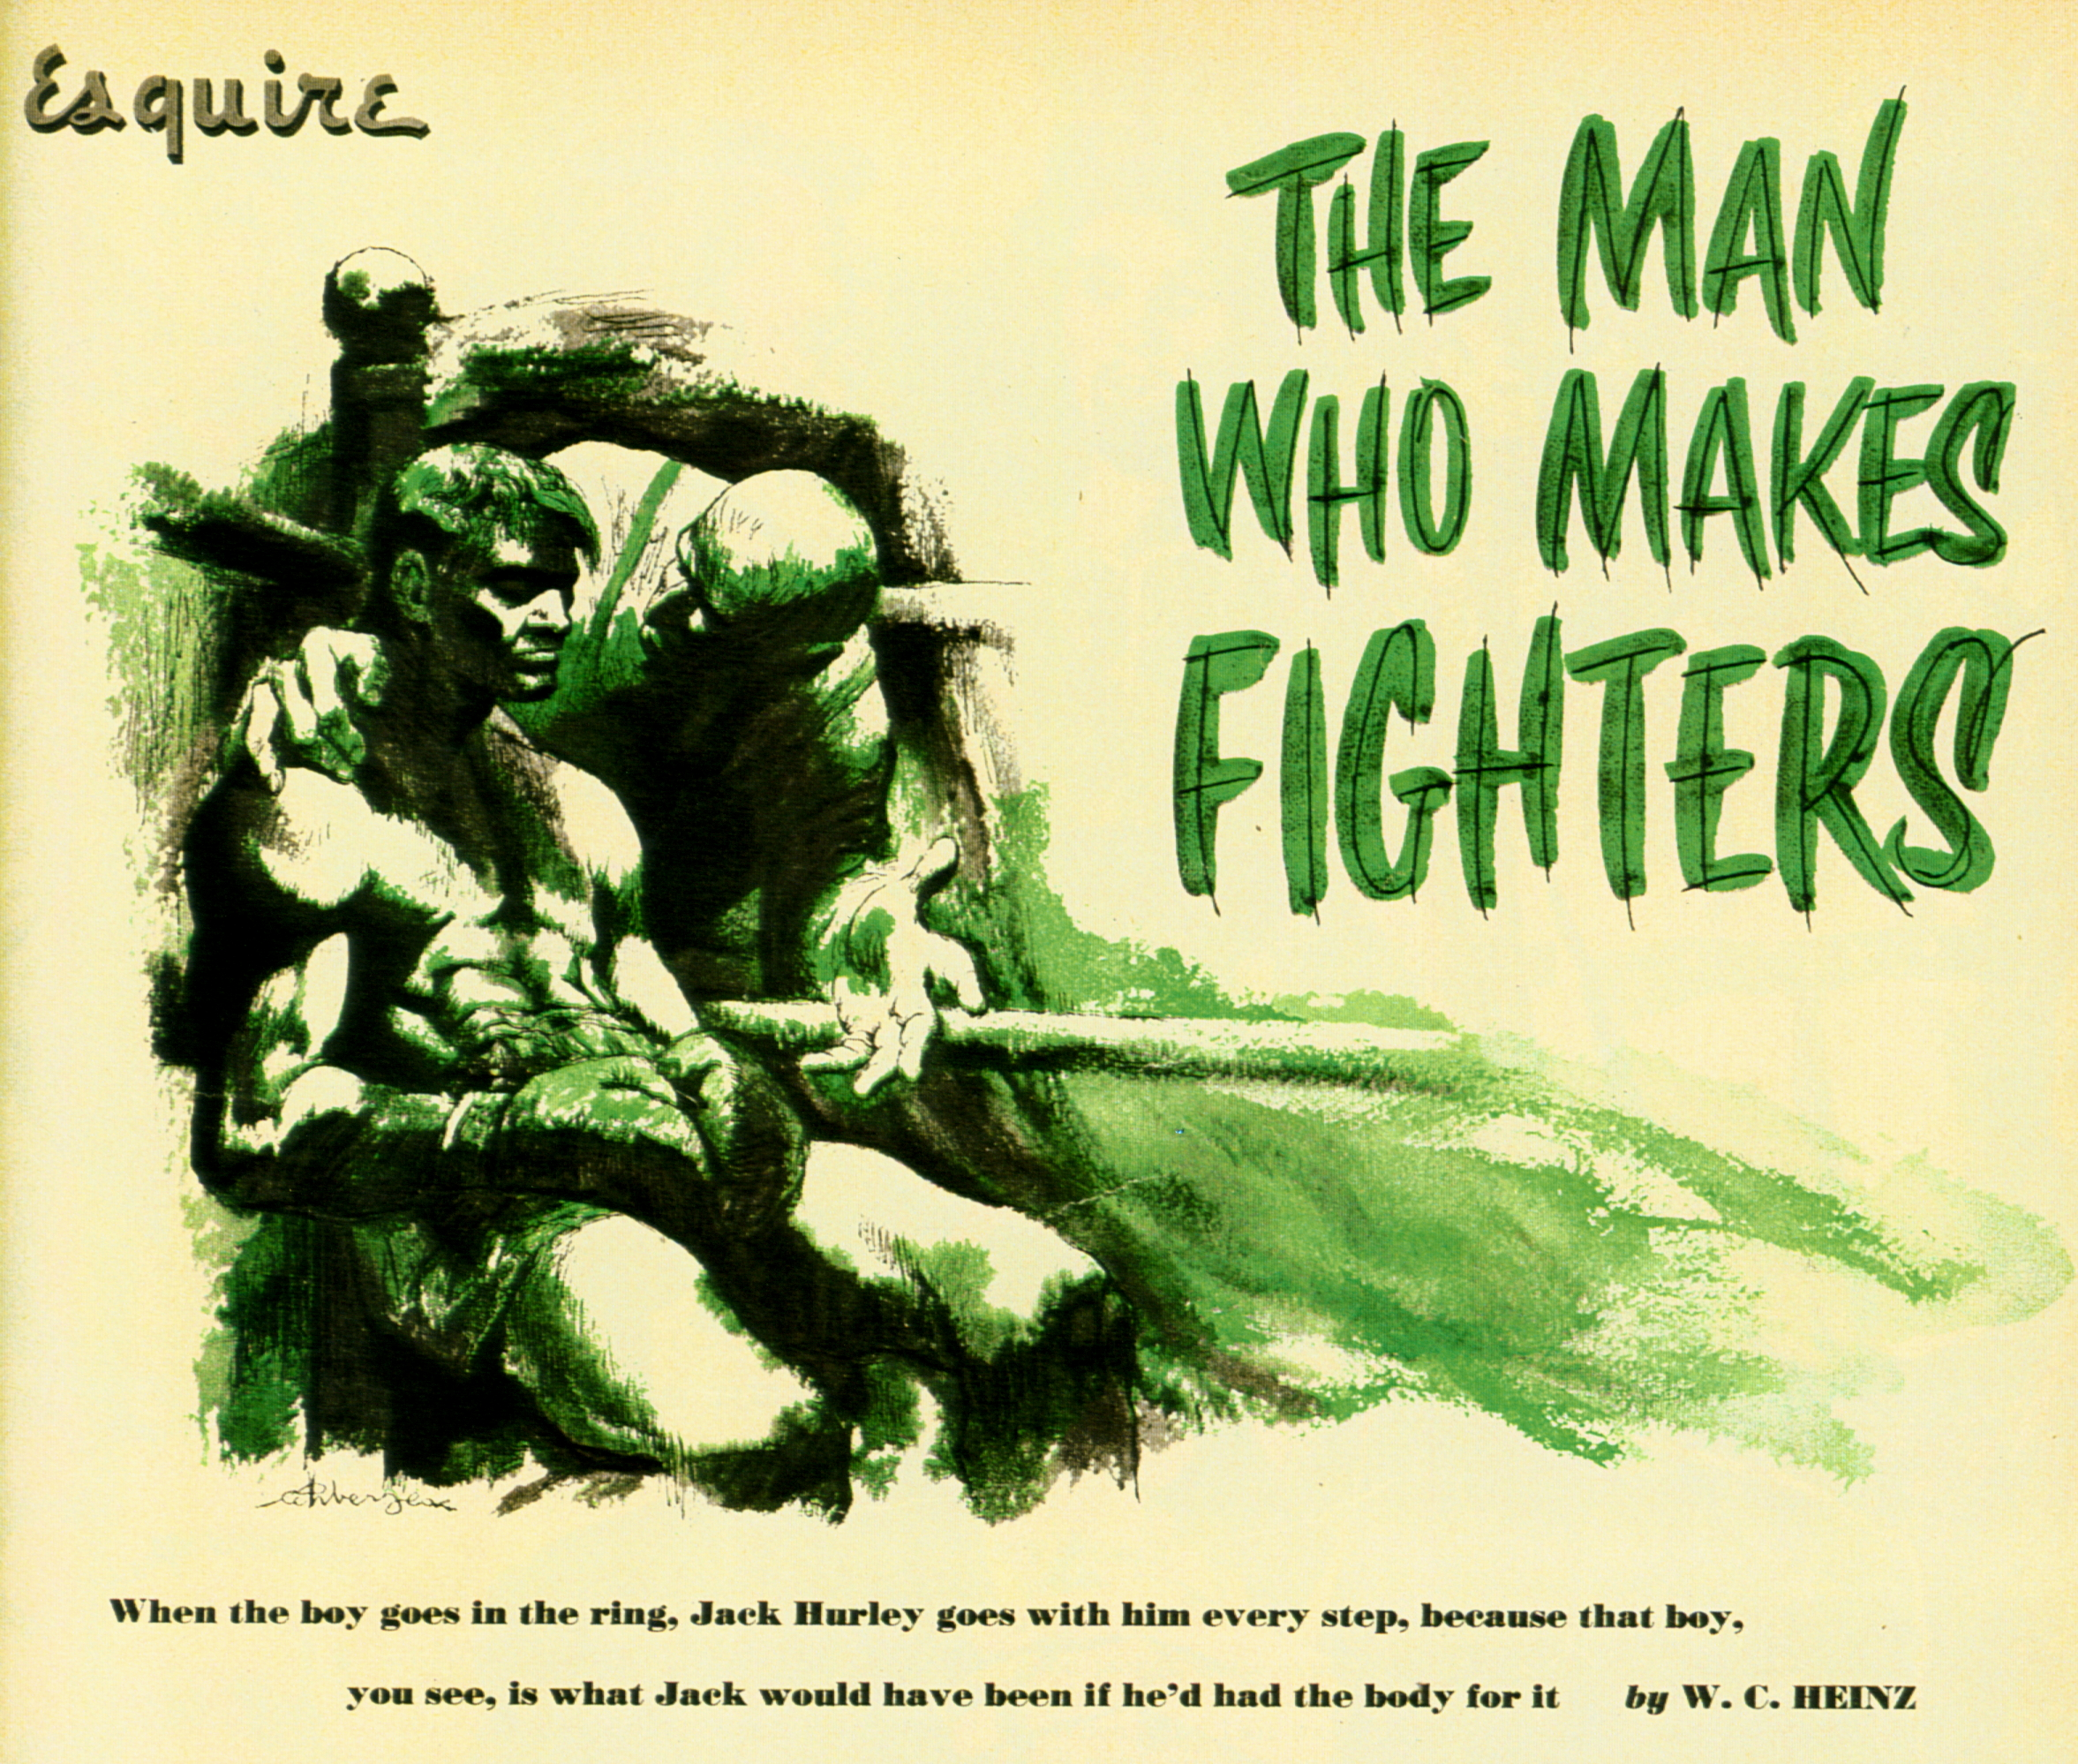 May 1952 - The Man Who Makes Fighters